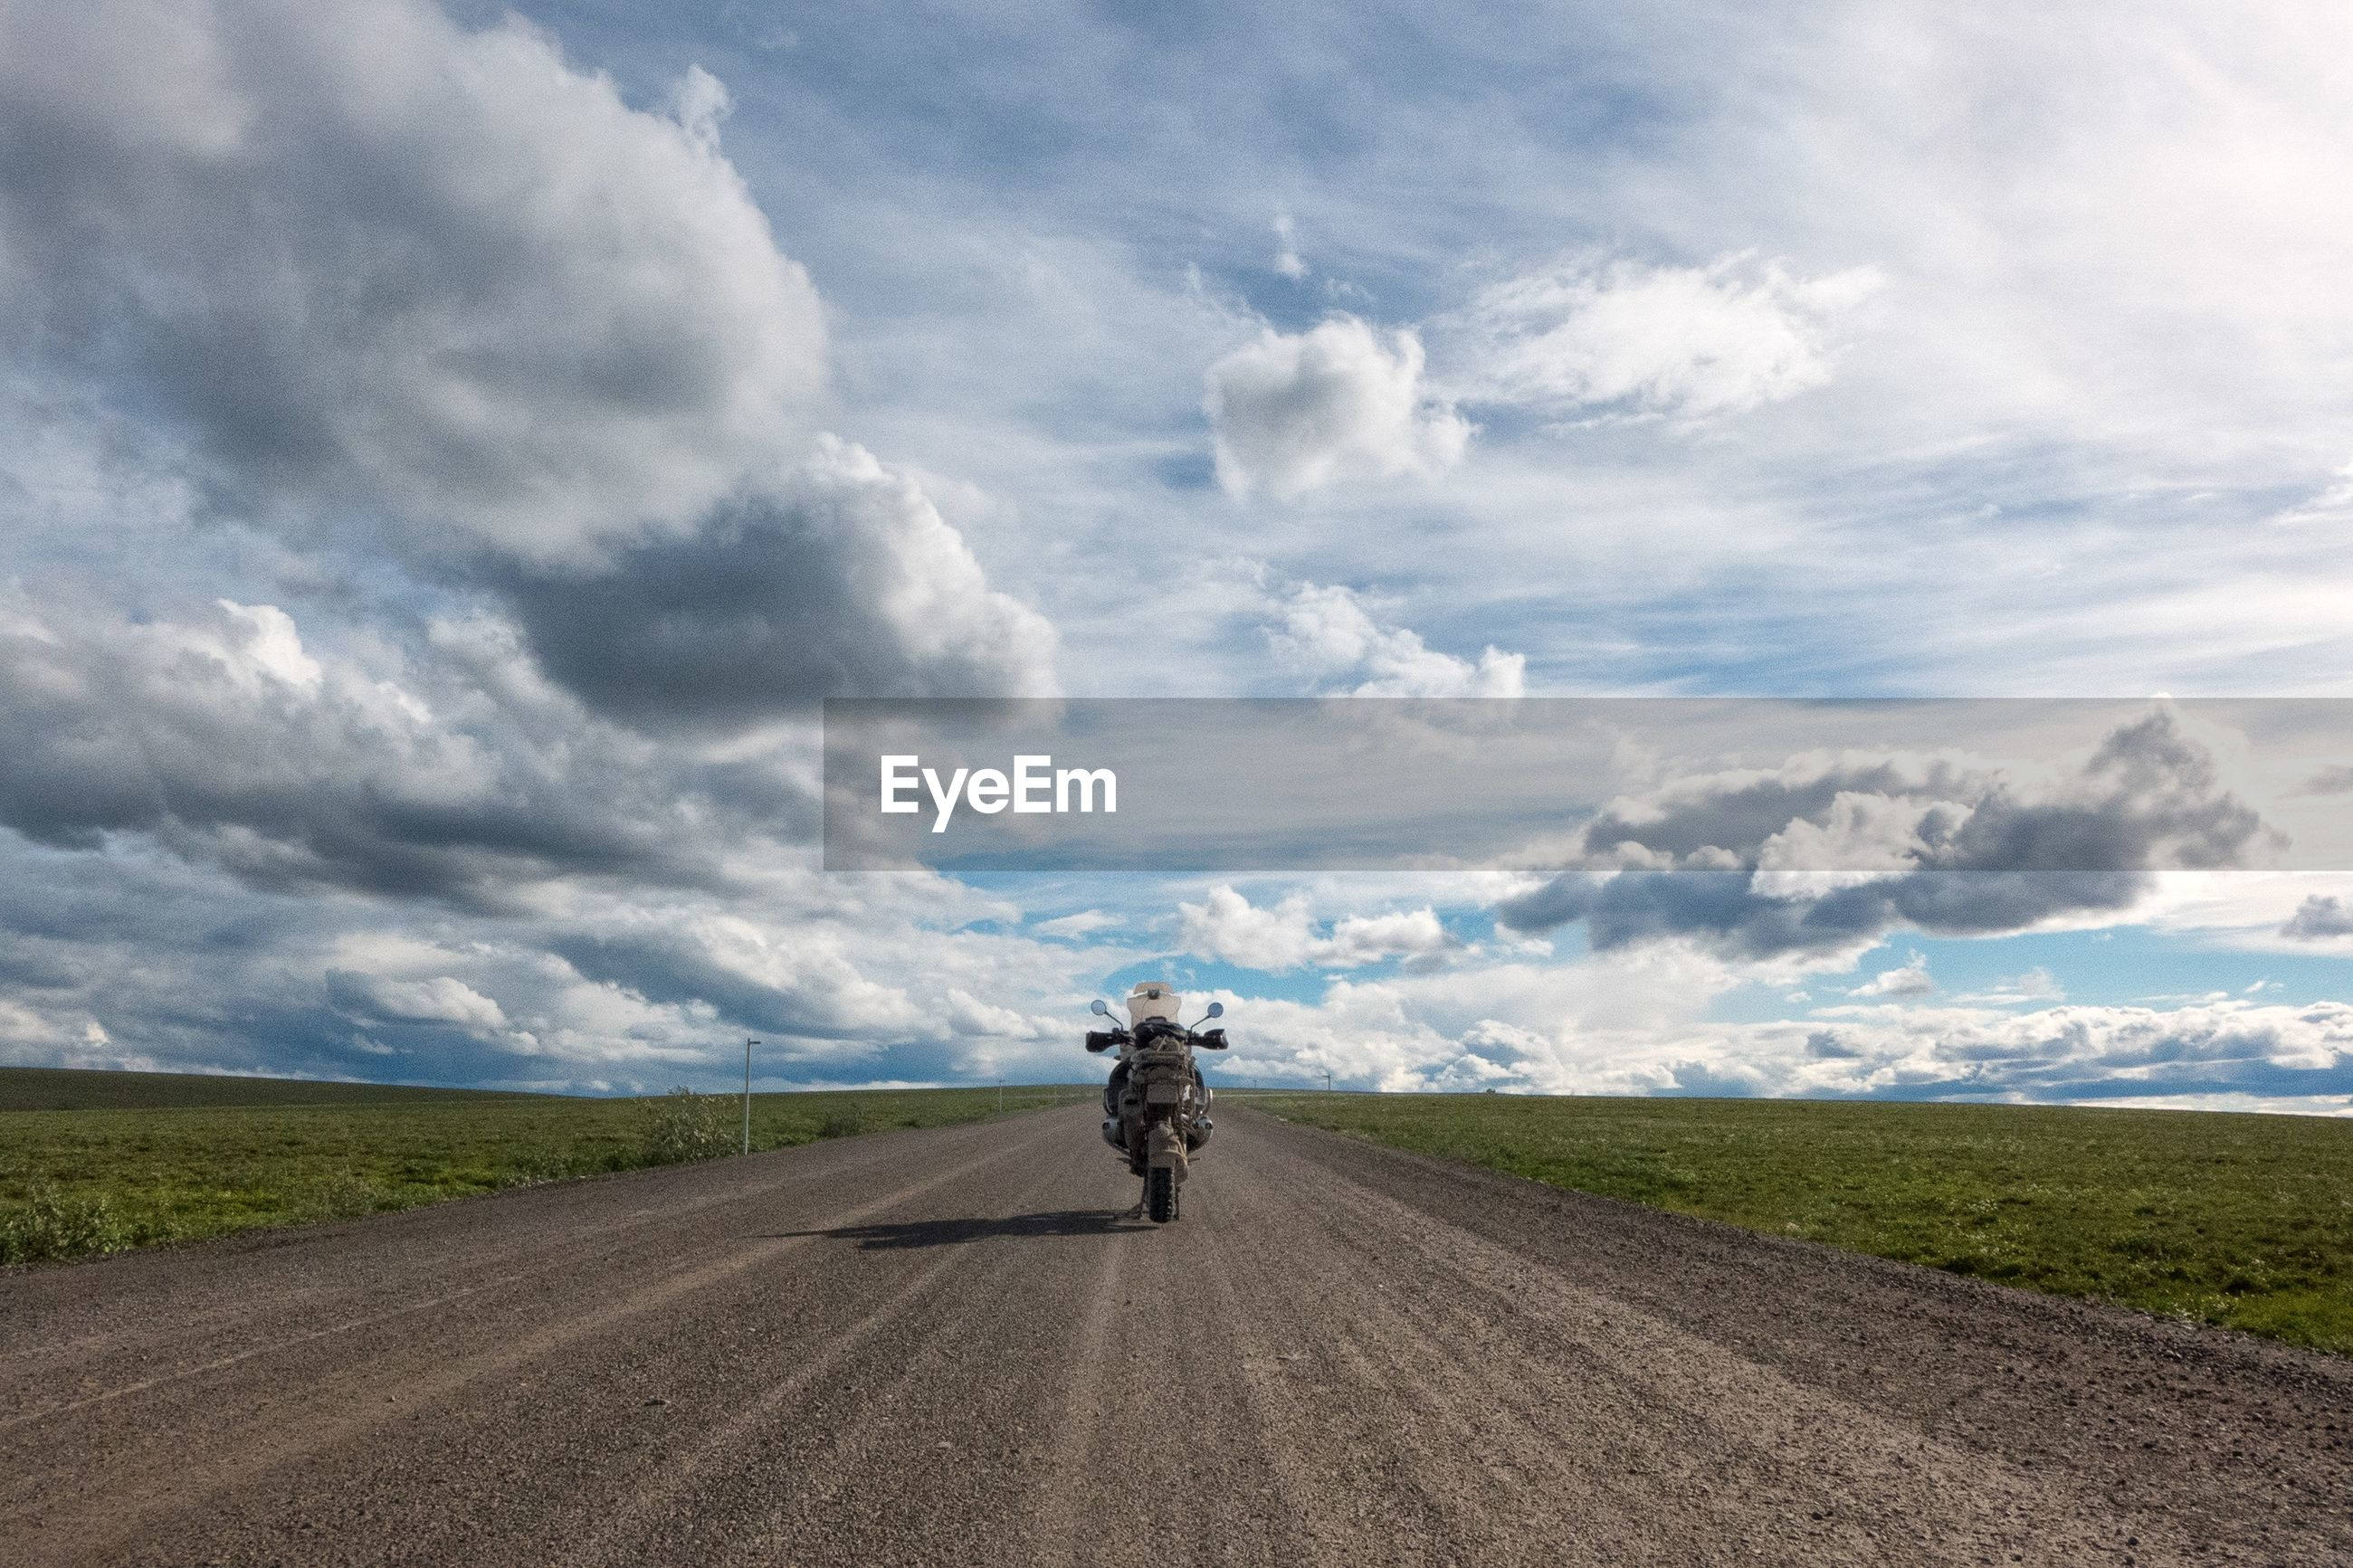 transportation, sky, full length, road, cloud - sky, land vehicle, the way forward, landscape, rear view, cloudy, riding, mode of transport, bicycle, field, lifestyles, country road, cloud, men